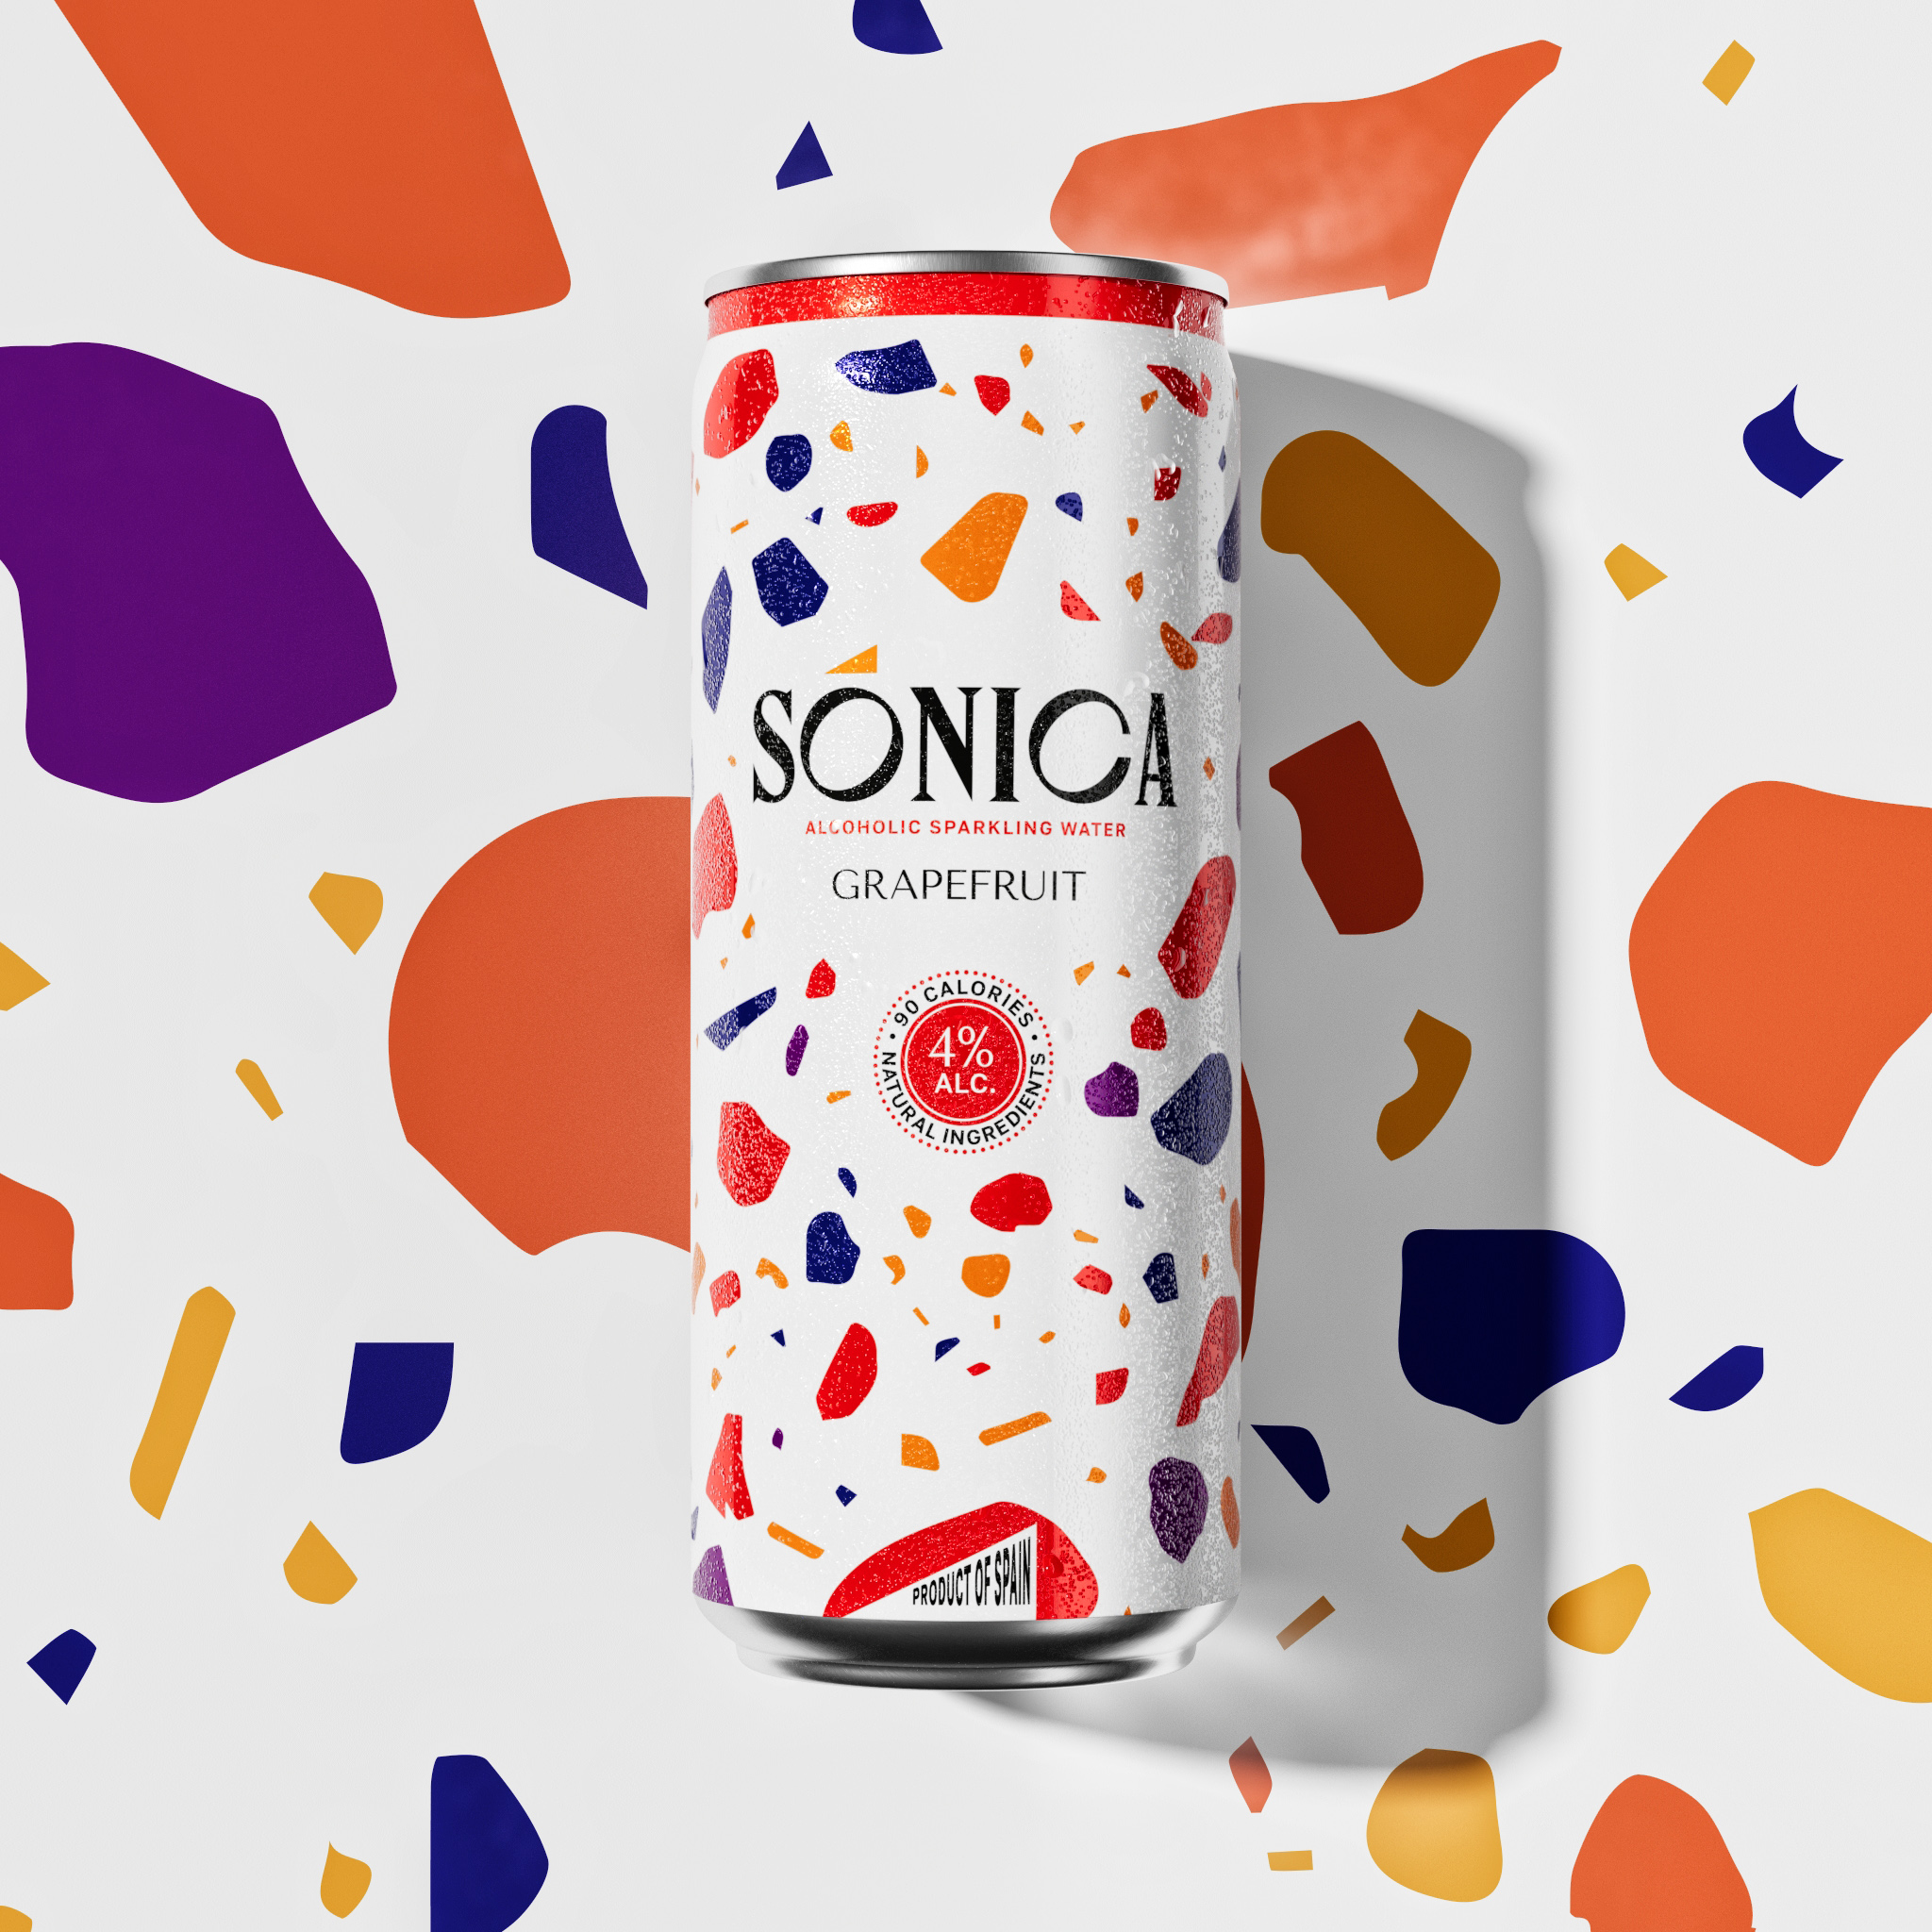 Igor Borisenko Created Identity and Packaging Design for Sonica Alcoholic Sparkling Water